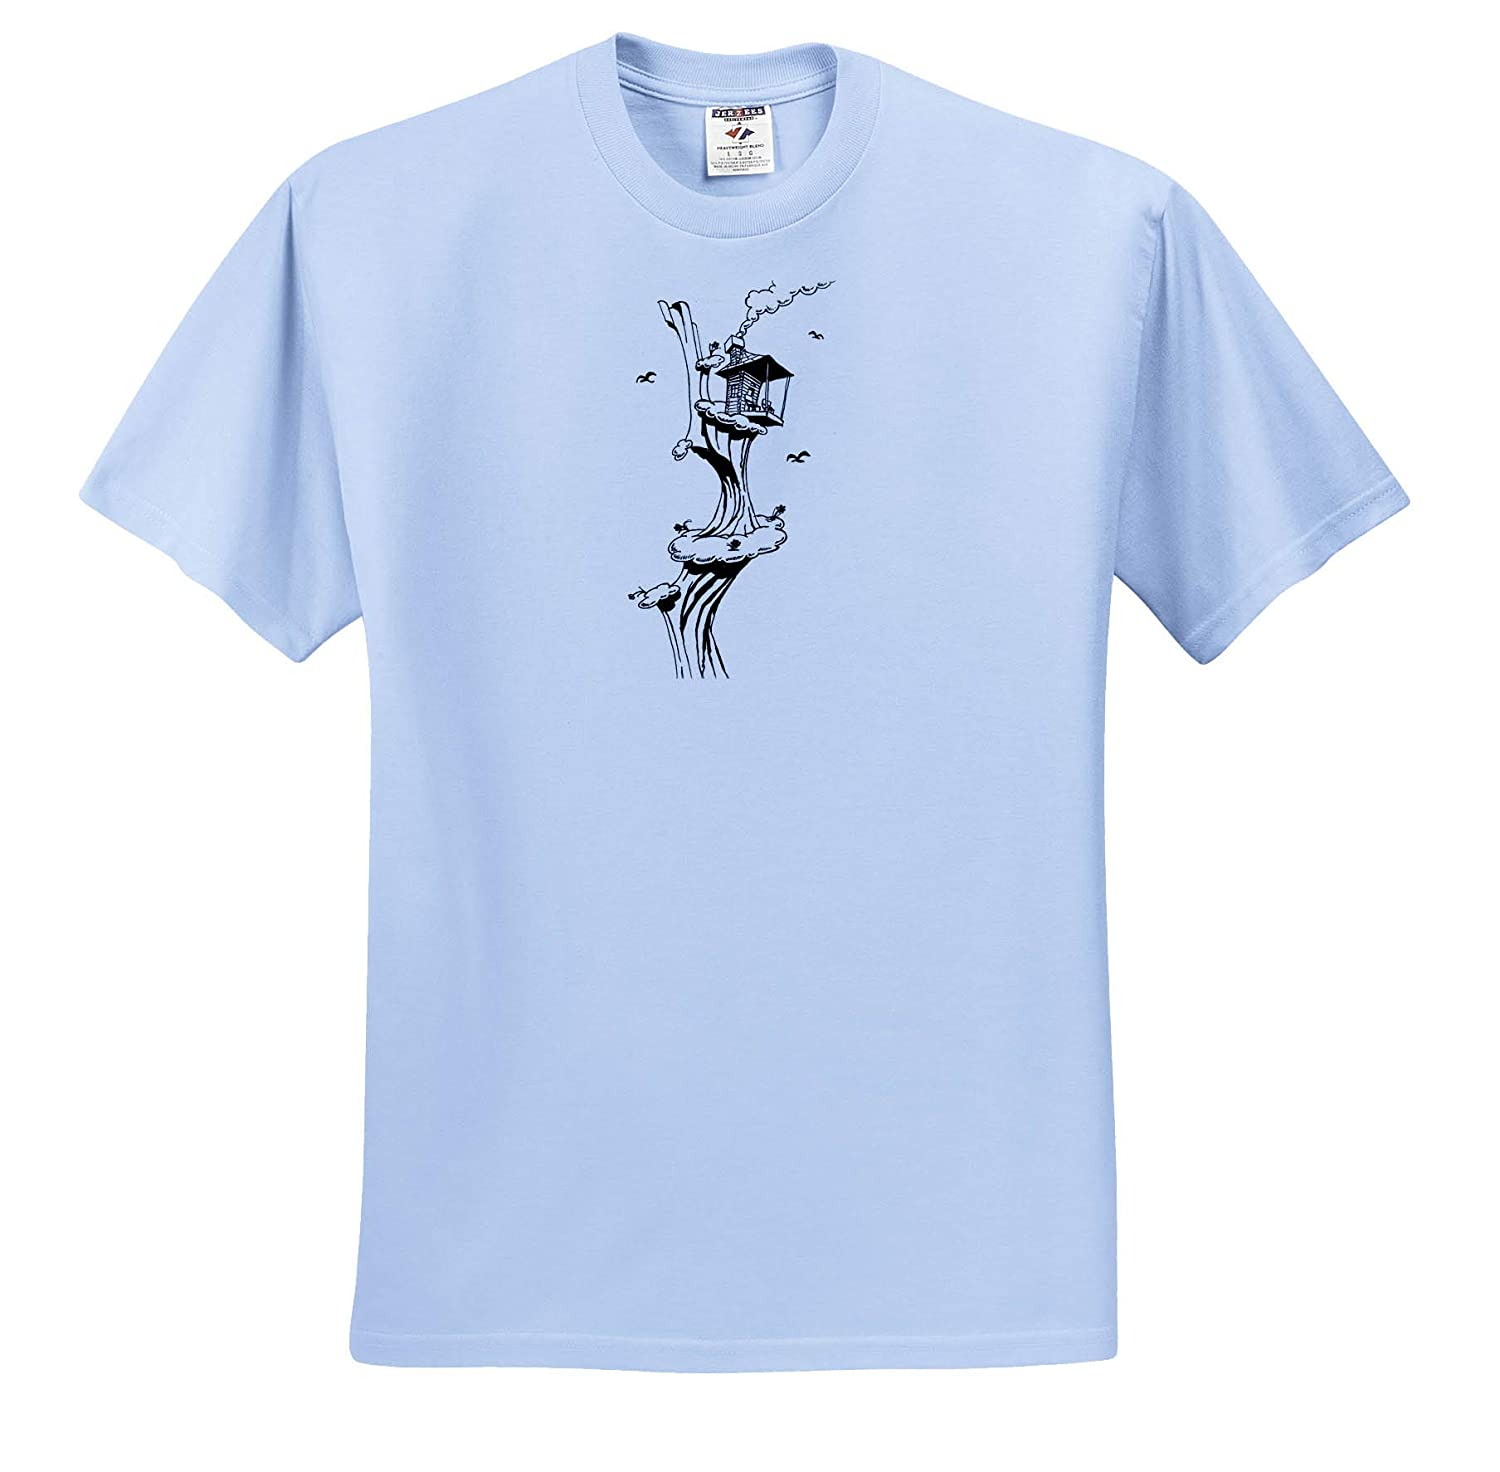 3dRose Travis ECK ts/_317522 Cabin in The Sky Art Adult T-Shirt XL